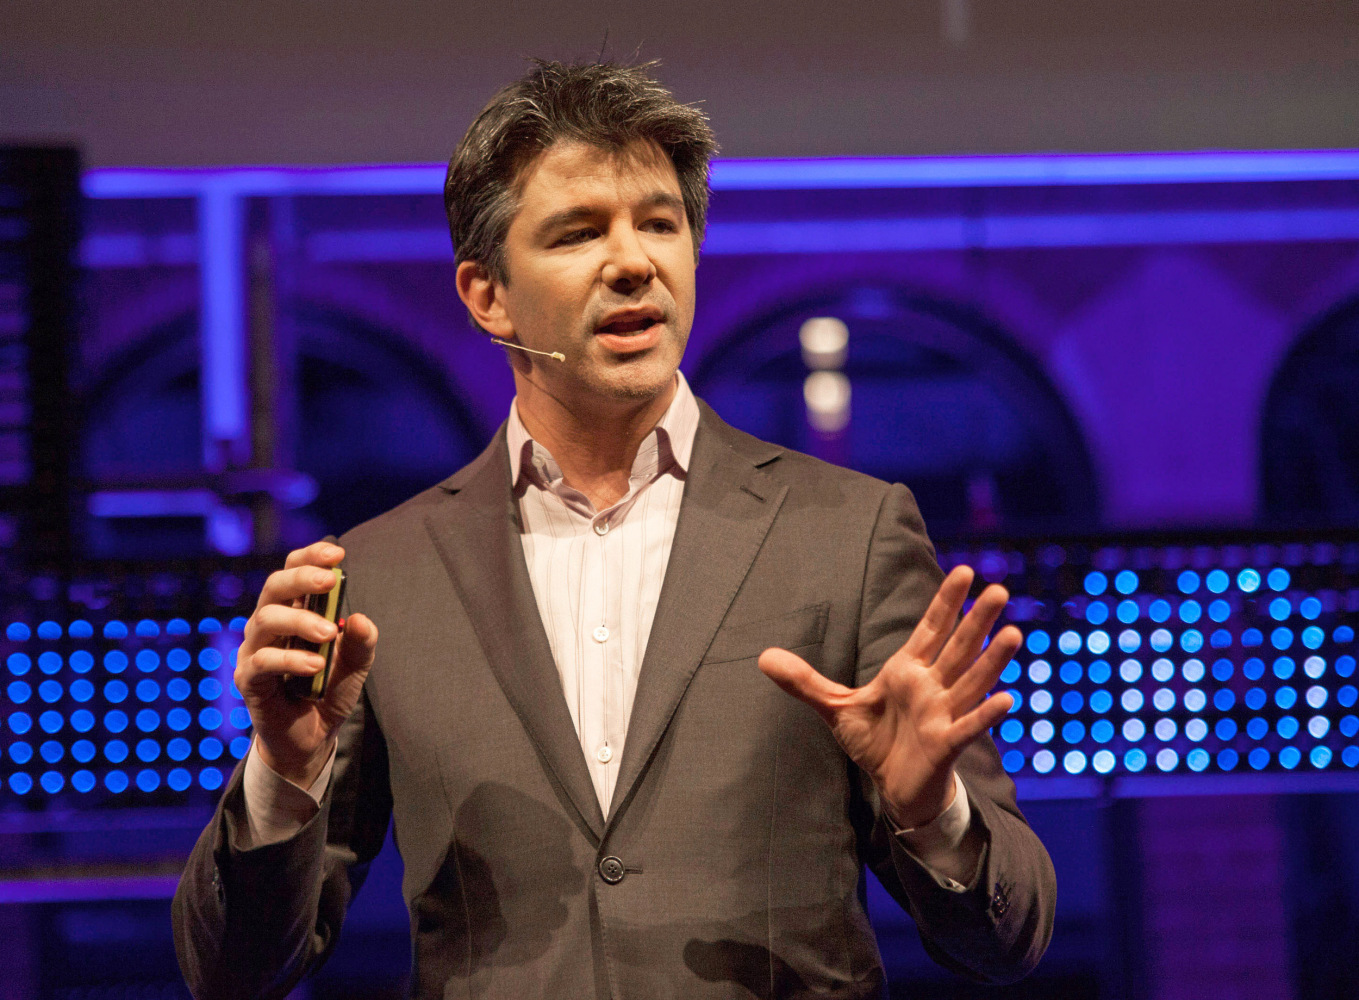 Uber boss Travis Kalanick quits after shareholder revolt